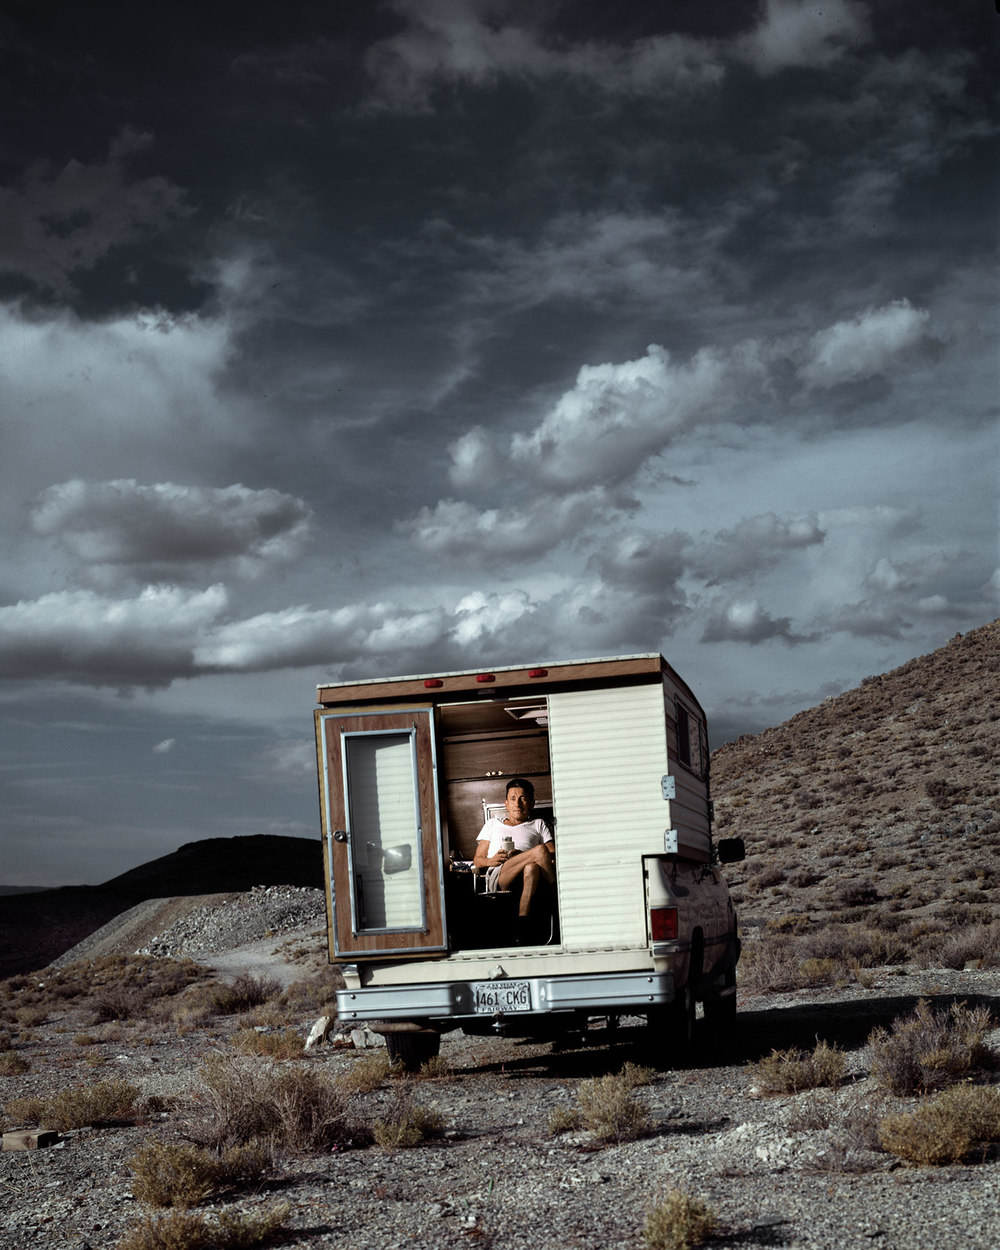 Deaf man in his camper, Mojave Desert.